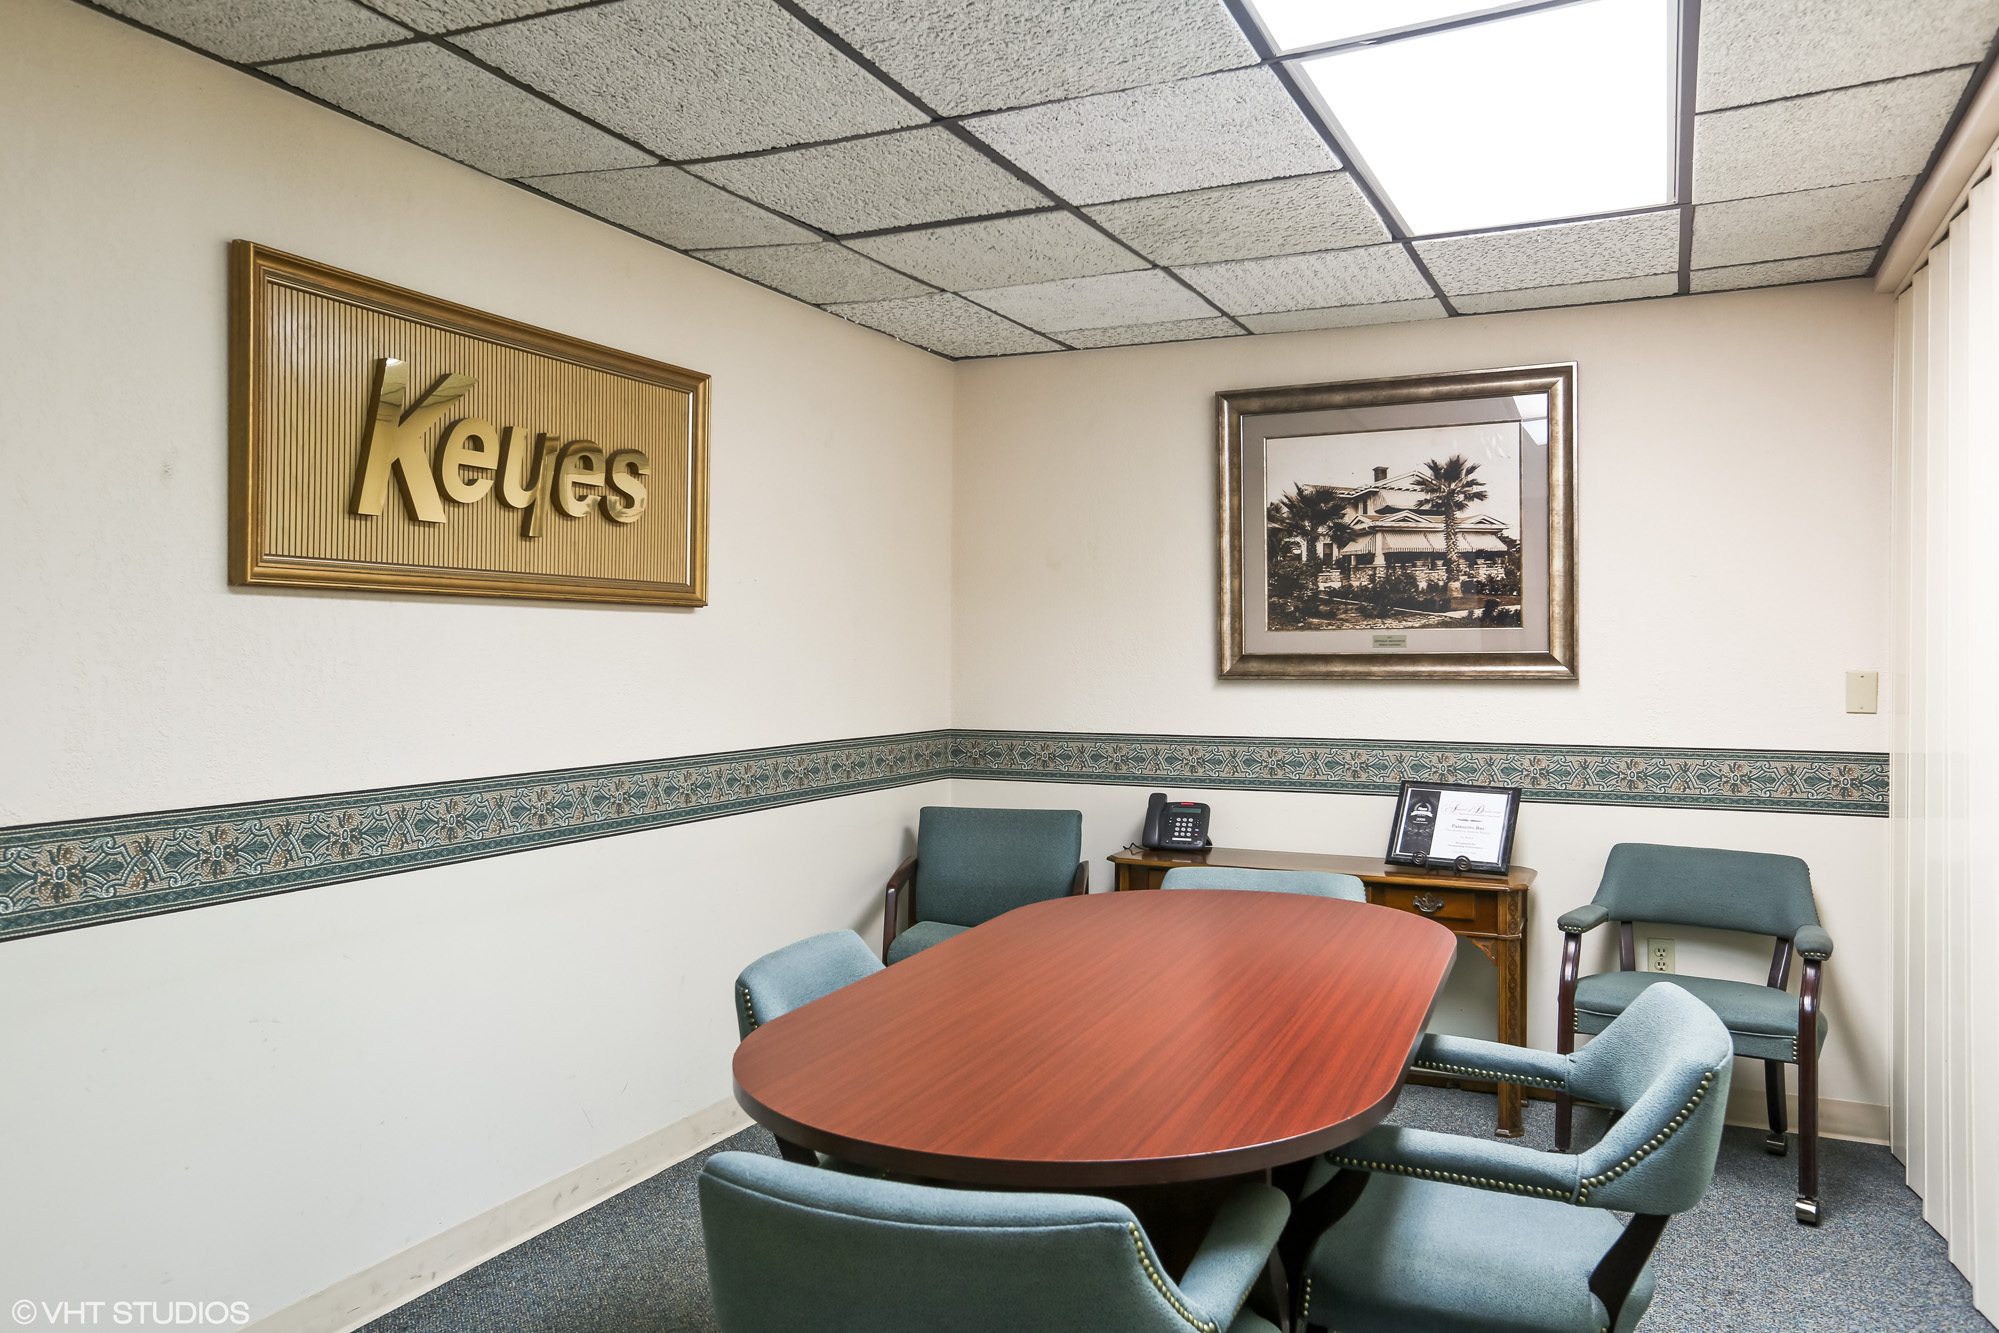 The Keyes Company image 2